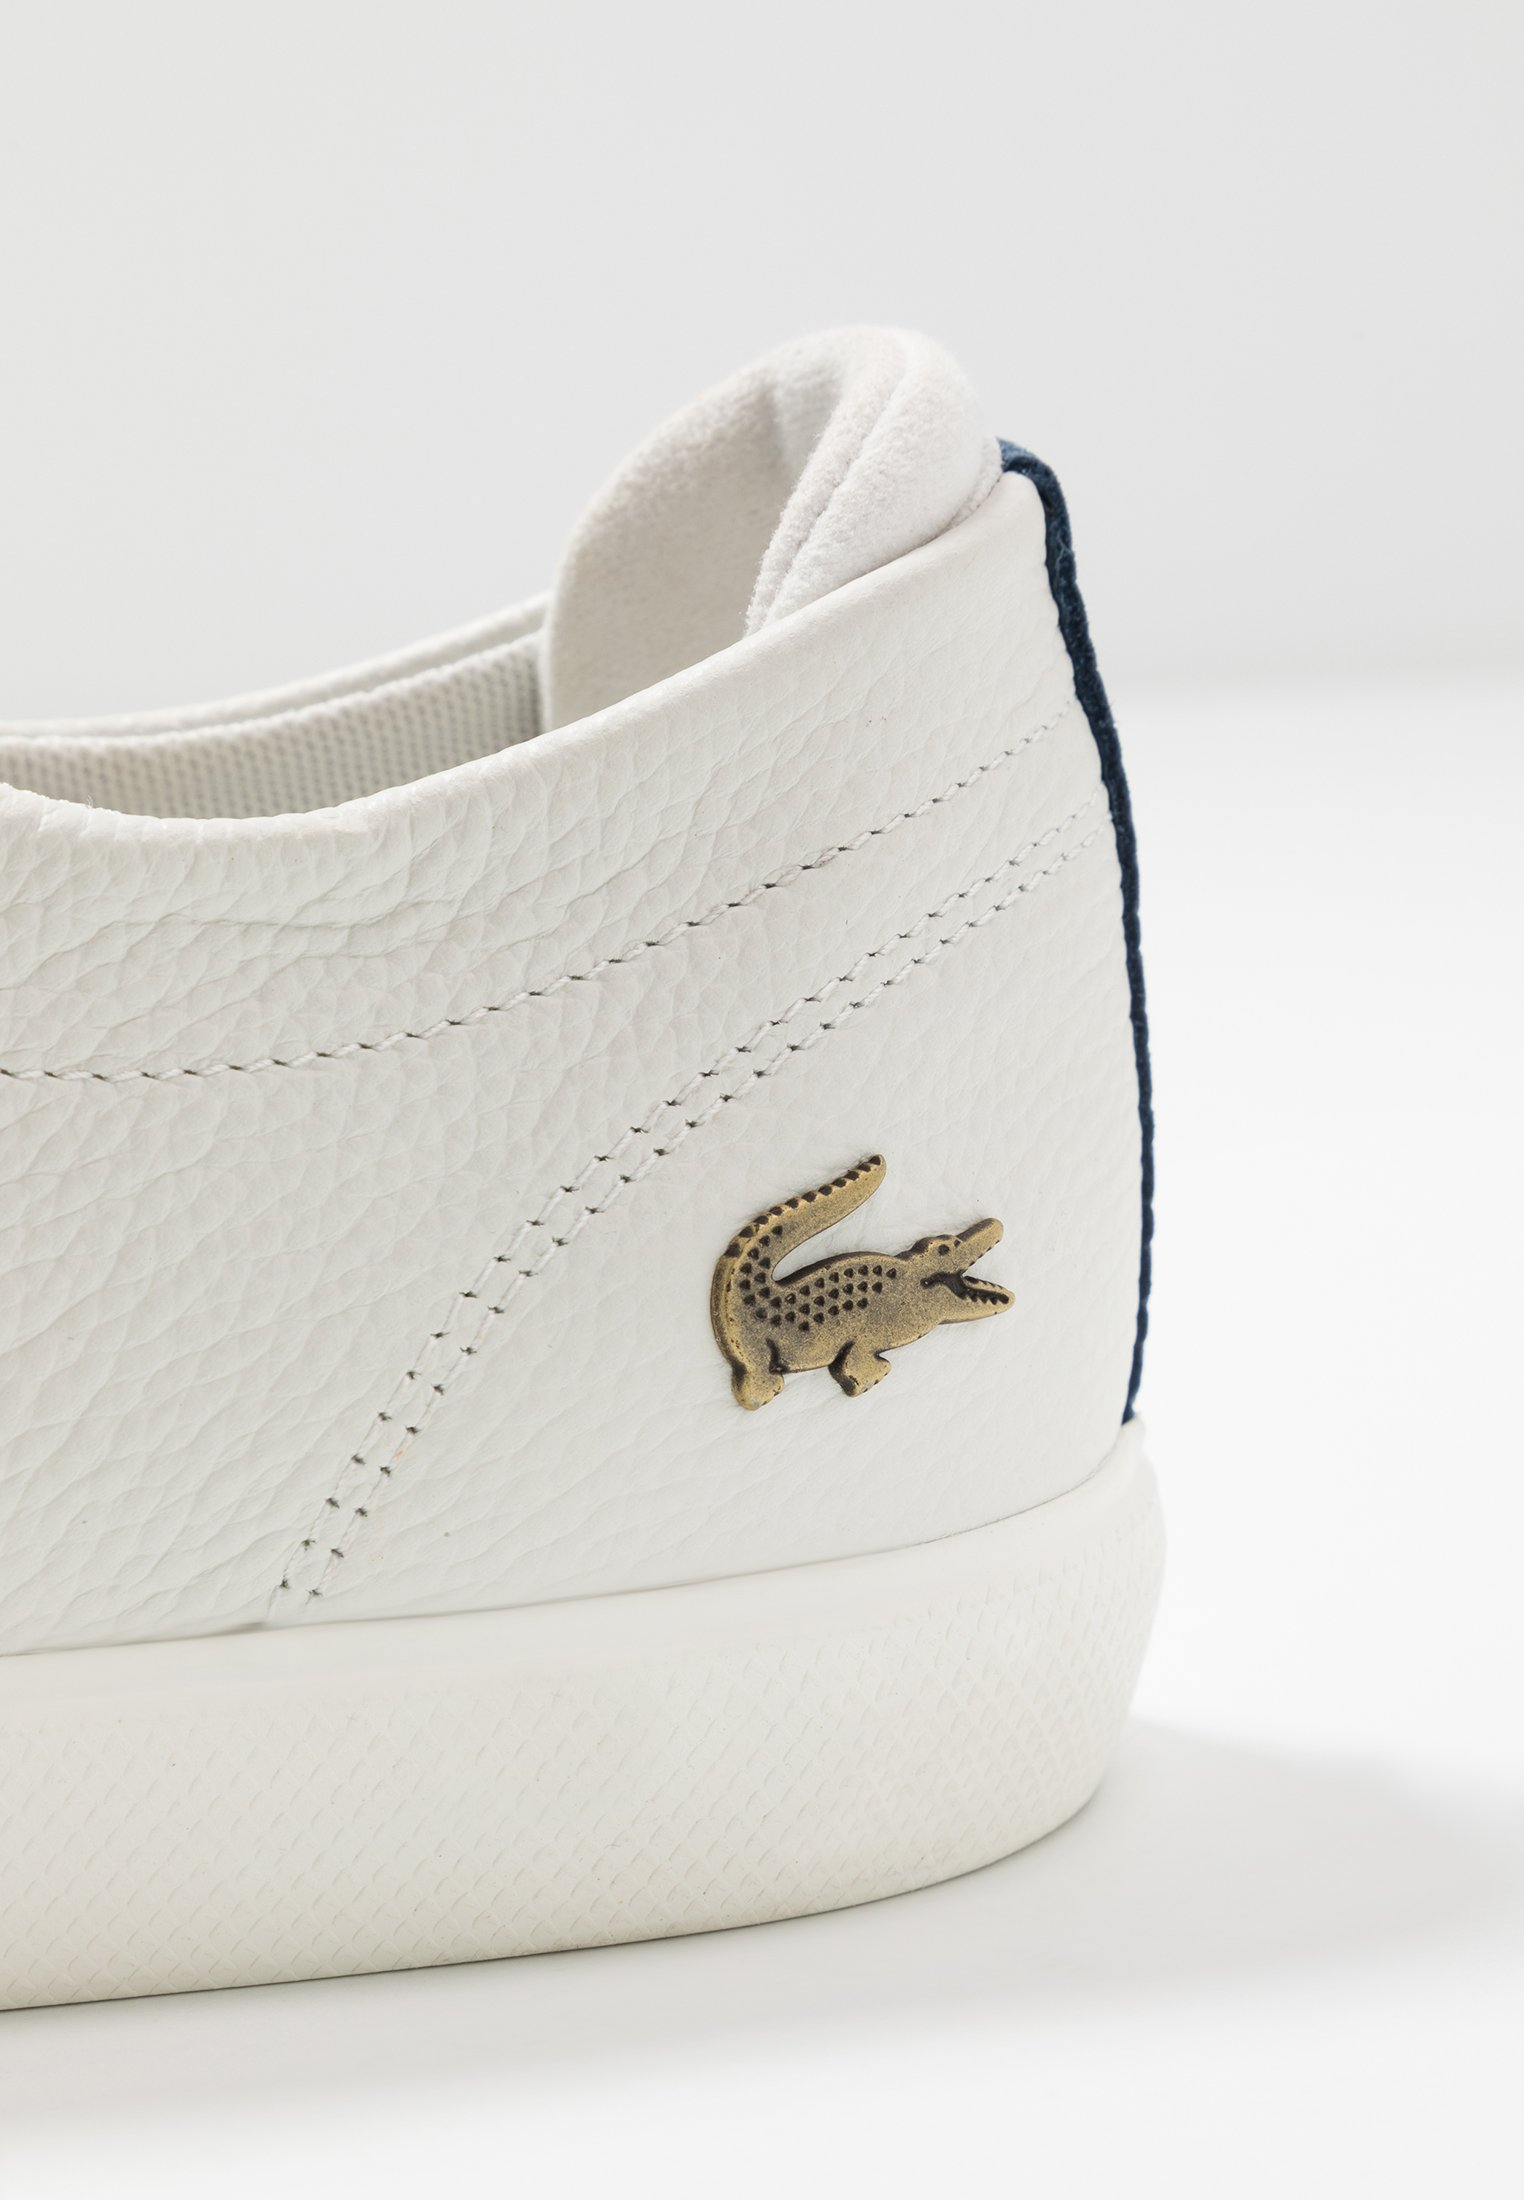 Lacoste Esparre - Sneakers Offwhite/navy